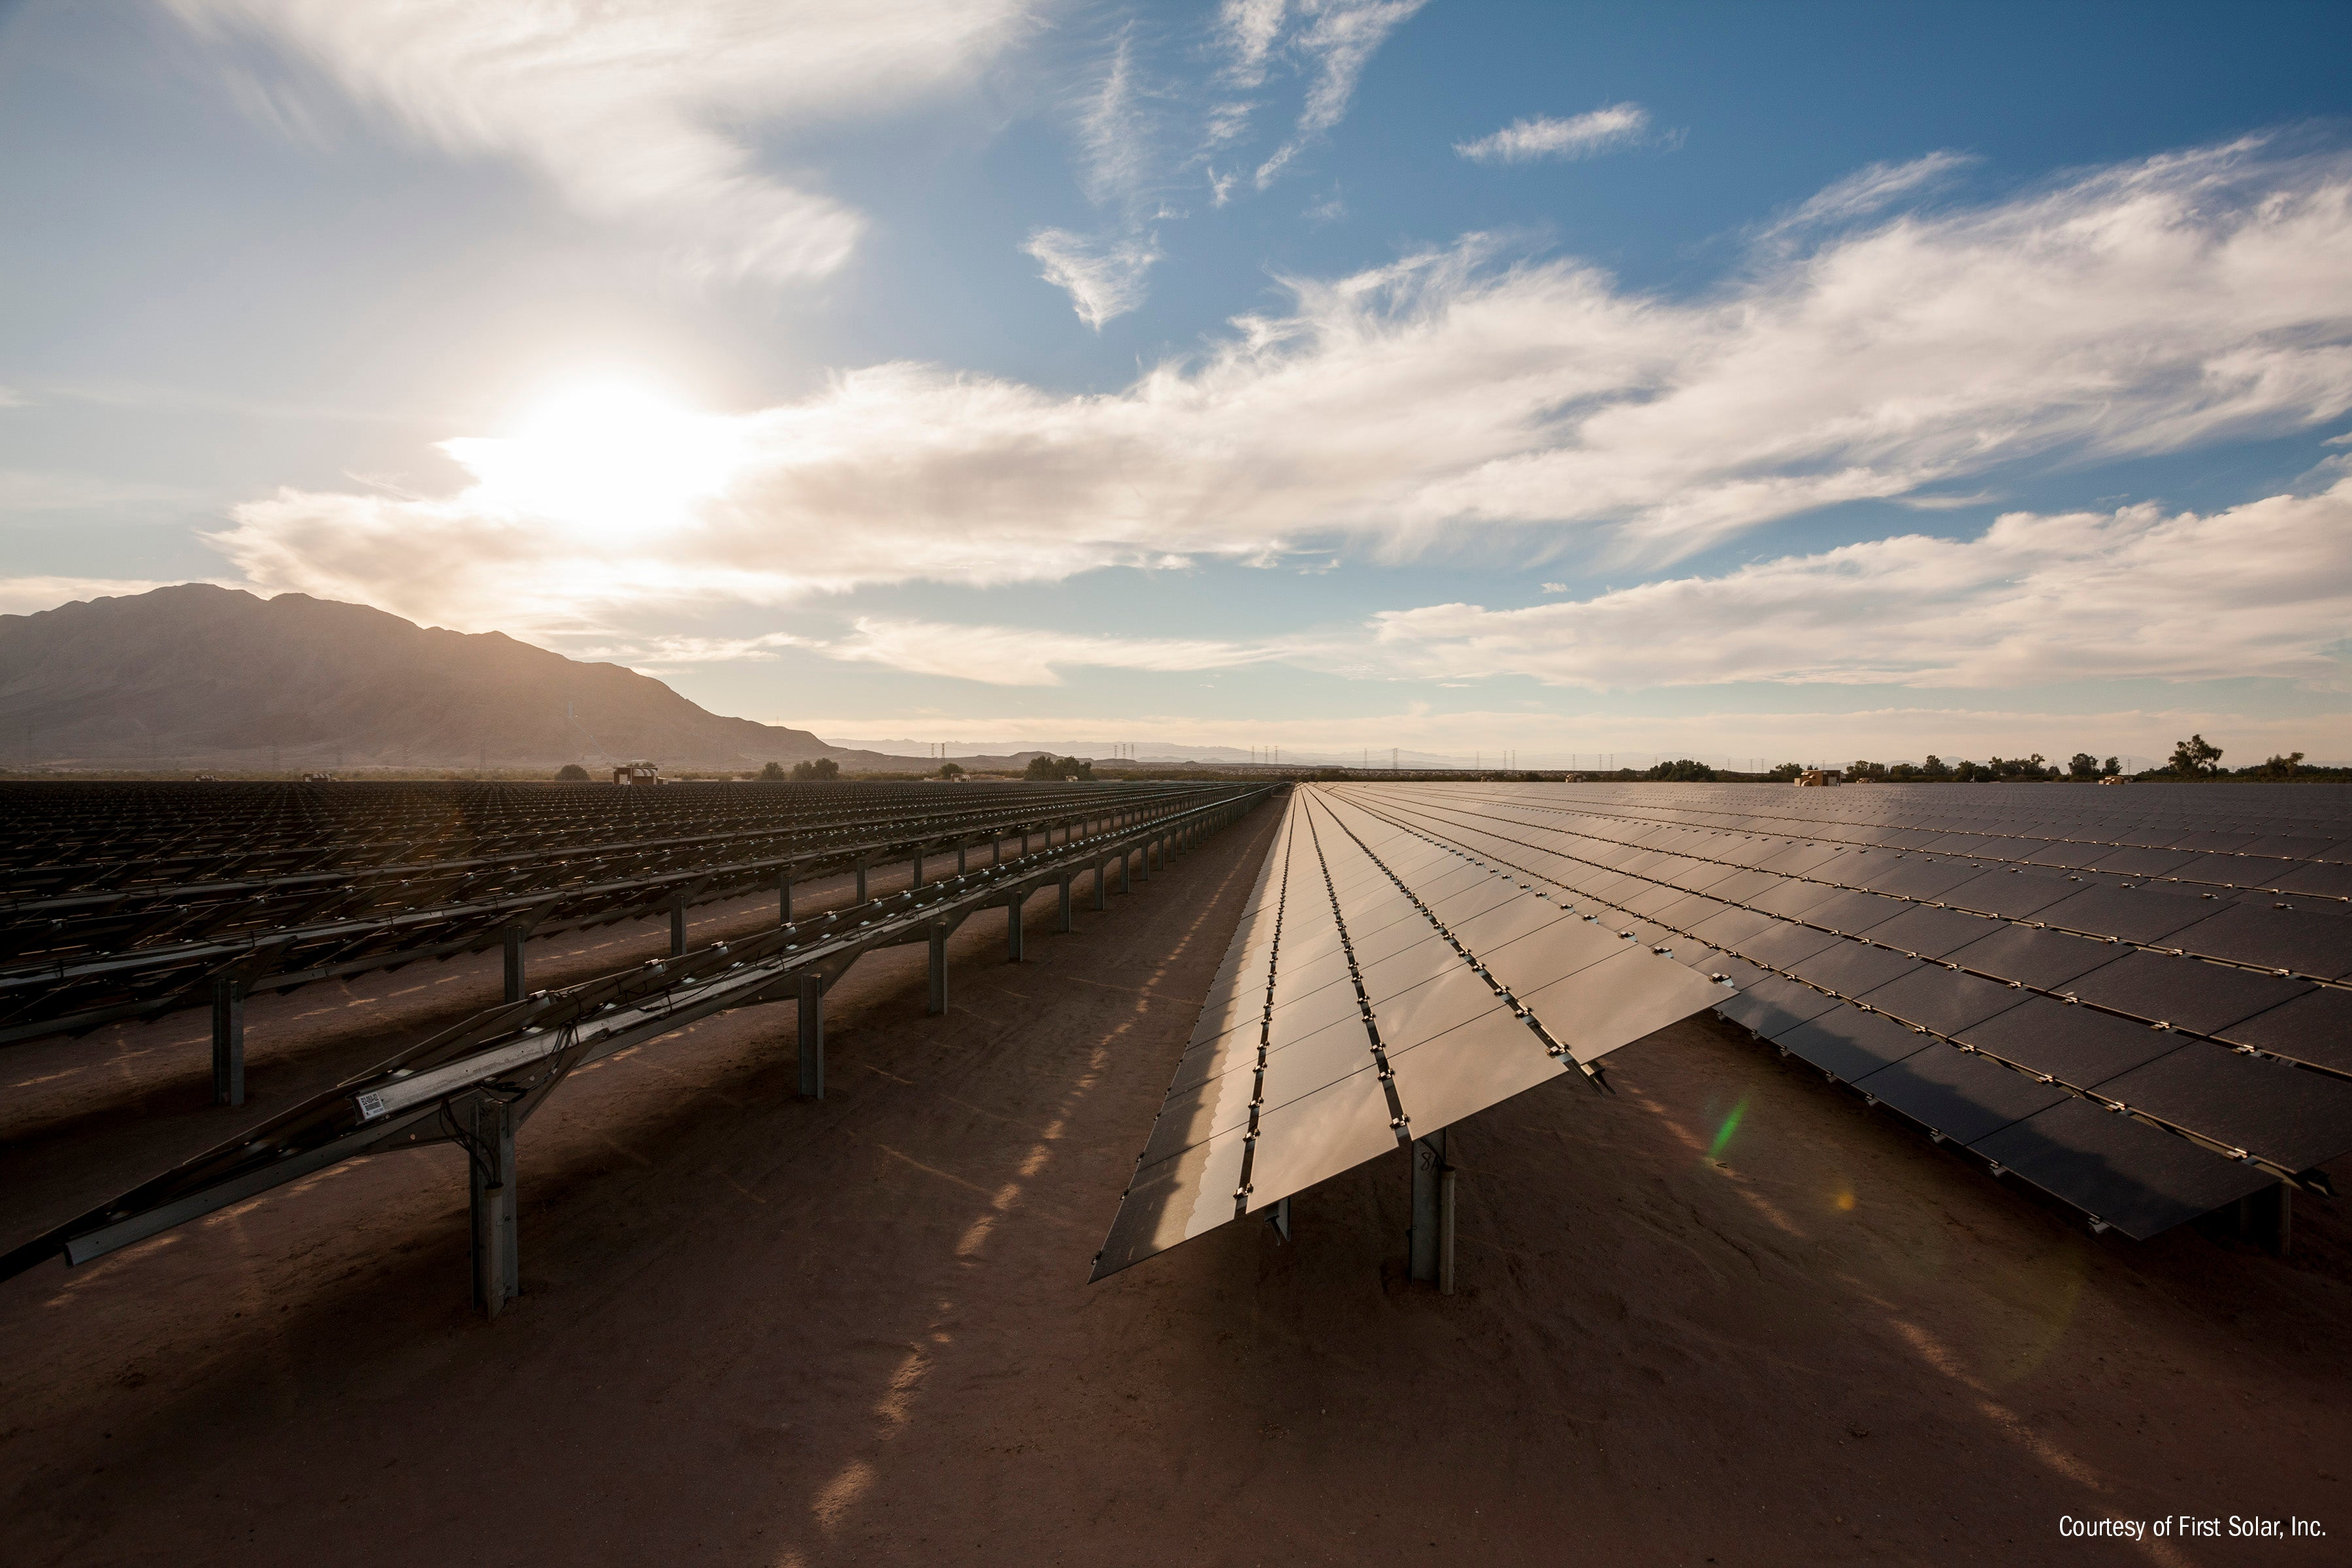 Could First Solar Be a Millionaire-Maker Stock? | The Motley Fool